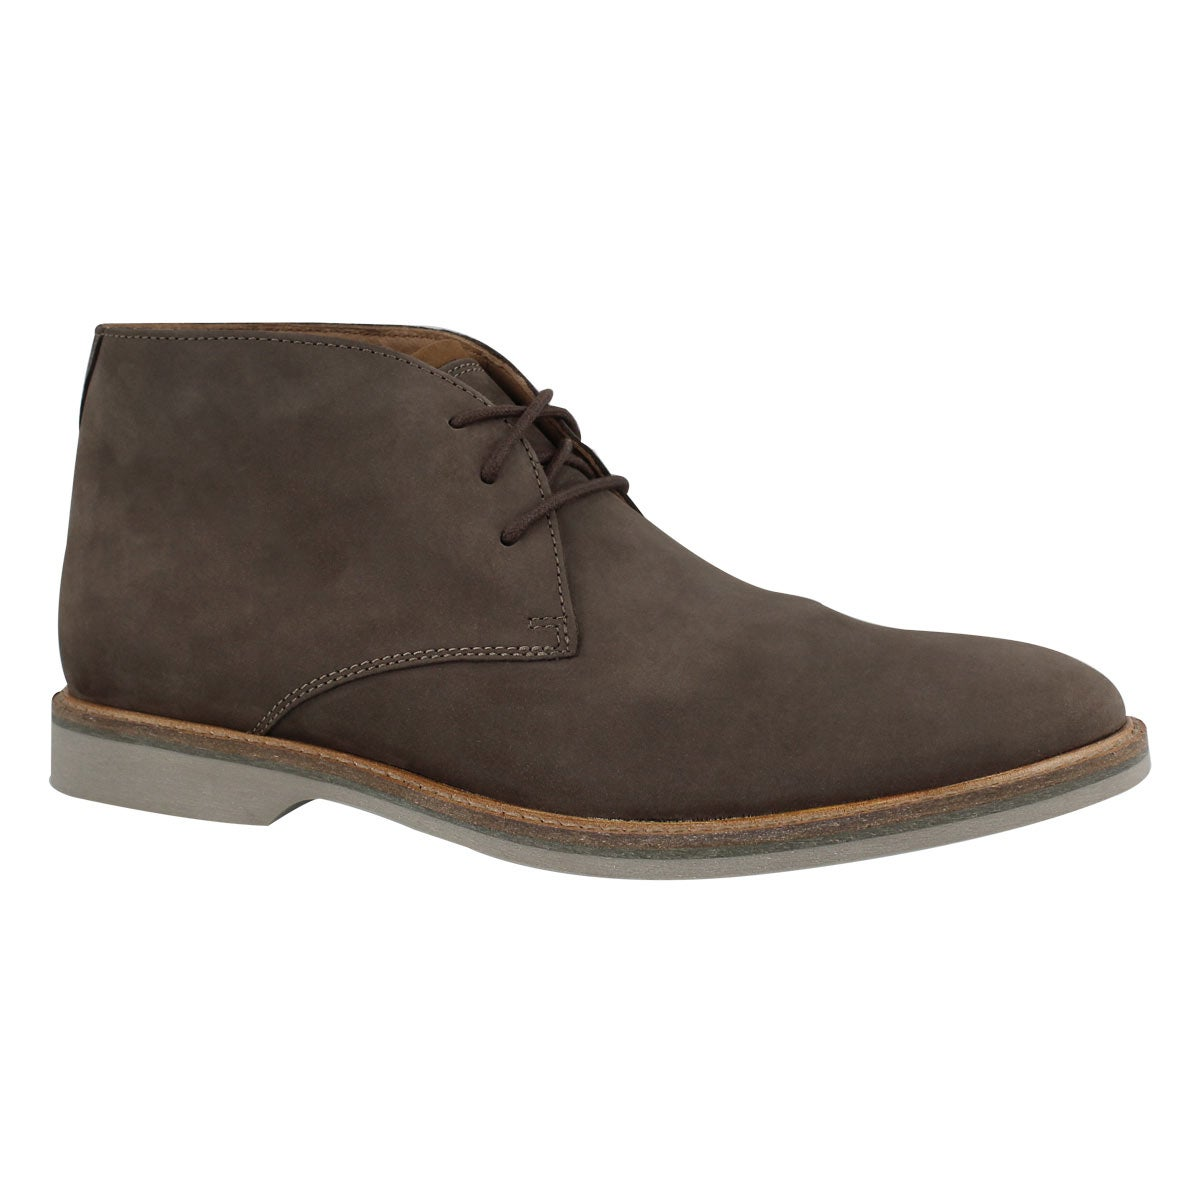 Men's ATTICUS LIMIT taupe chukka boots